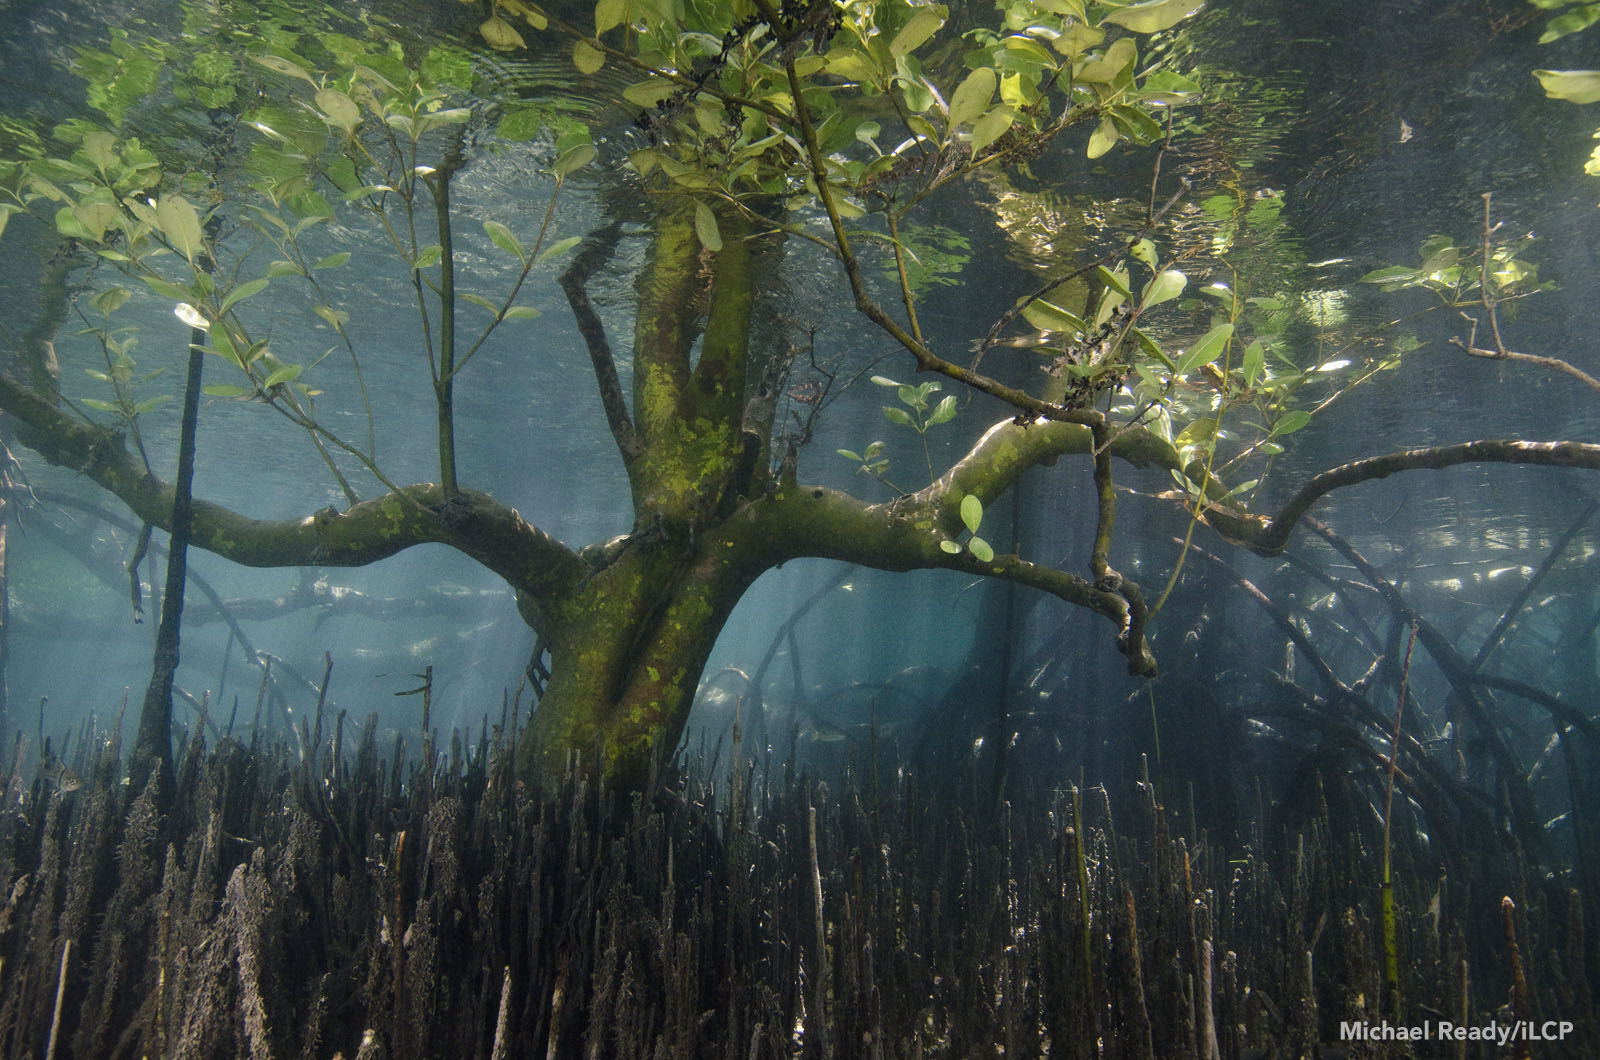 Old-growth mangrove forests like this one can recover and thrive in MPAs. Michael Ready/iLCP